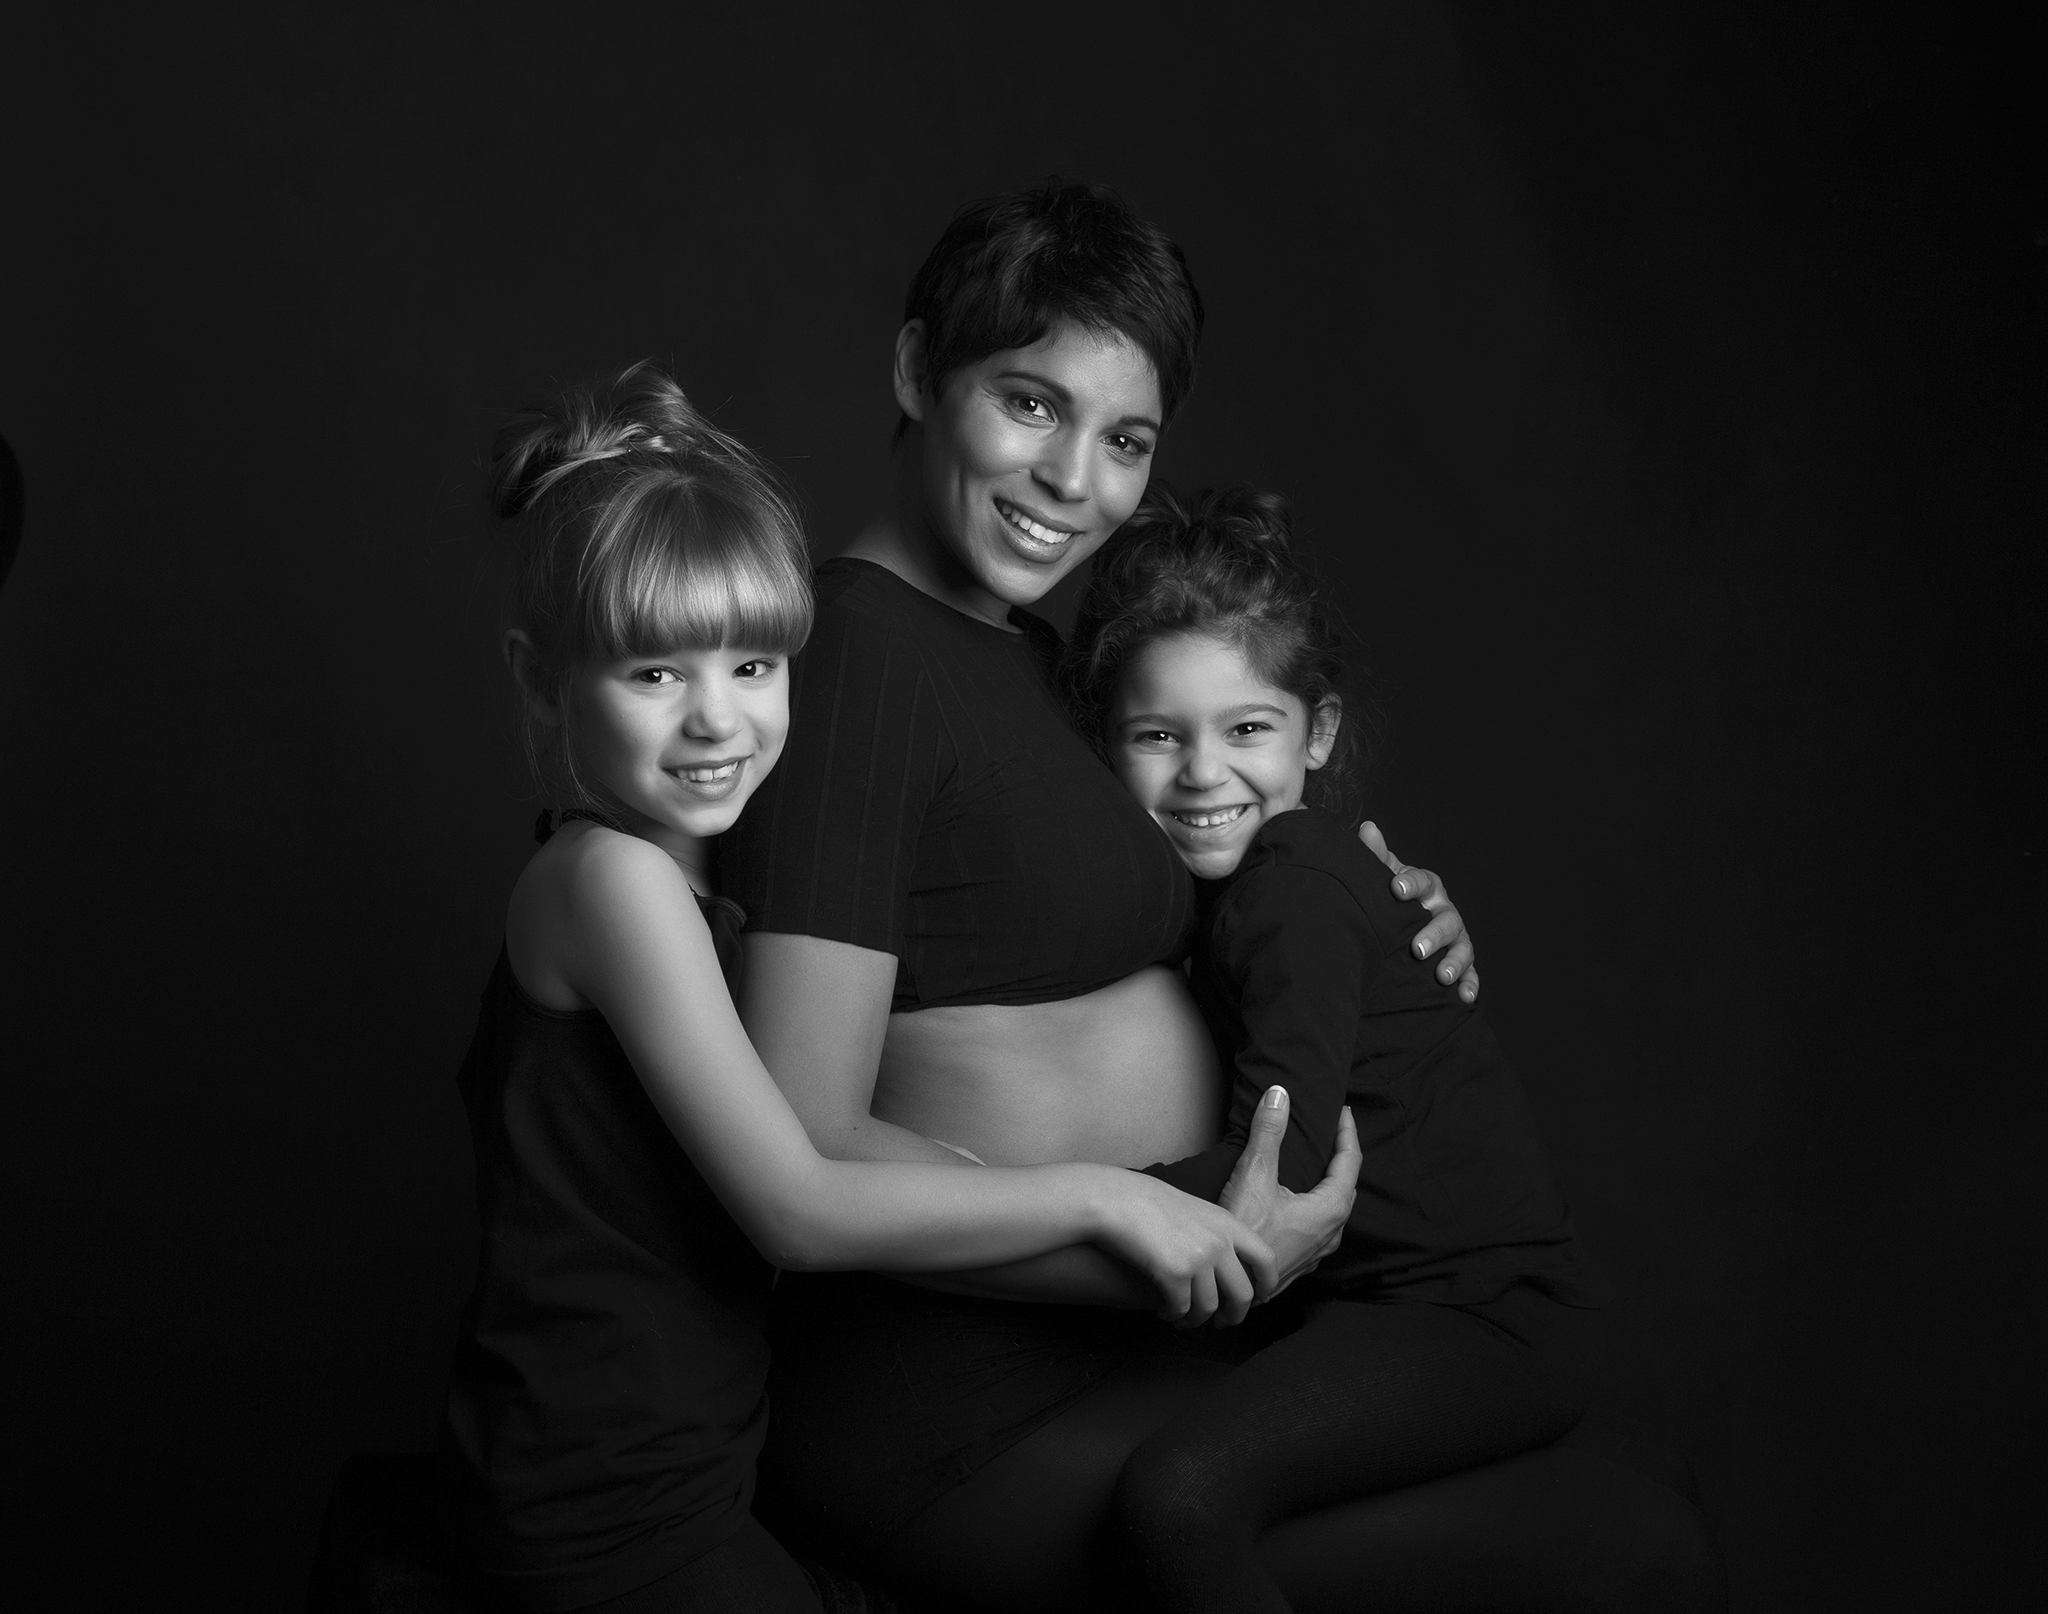 Elizabethg_fineart_photography_kingslangley_hertfordshire_tinyangels_model_familyportrait_maternity_sampson1.jpg